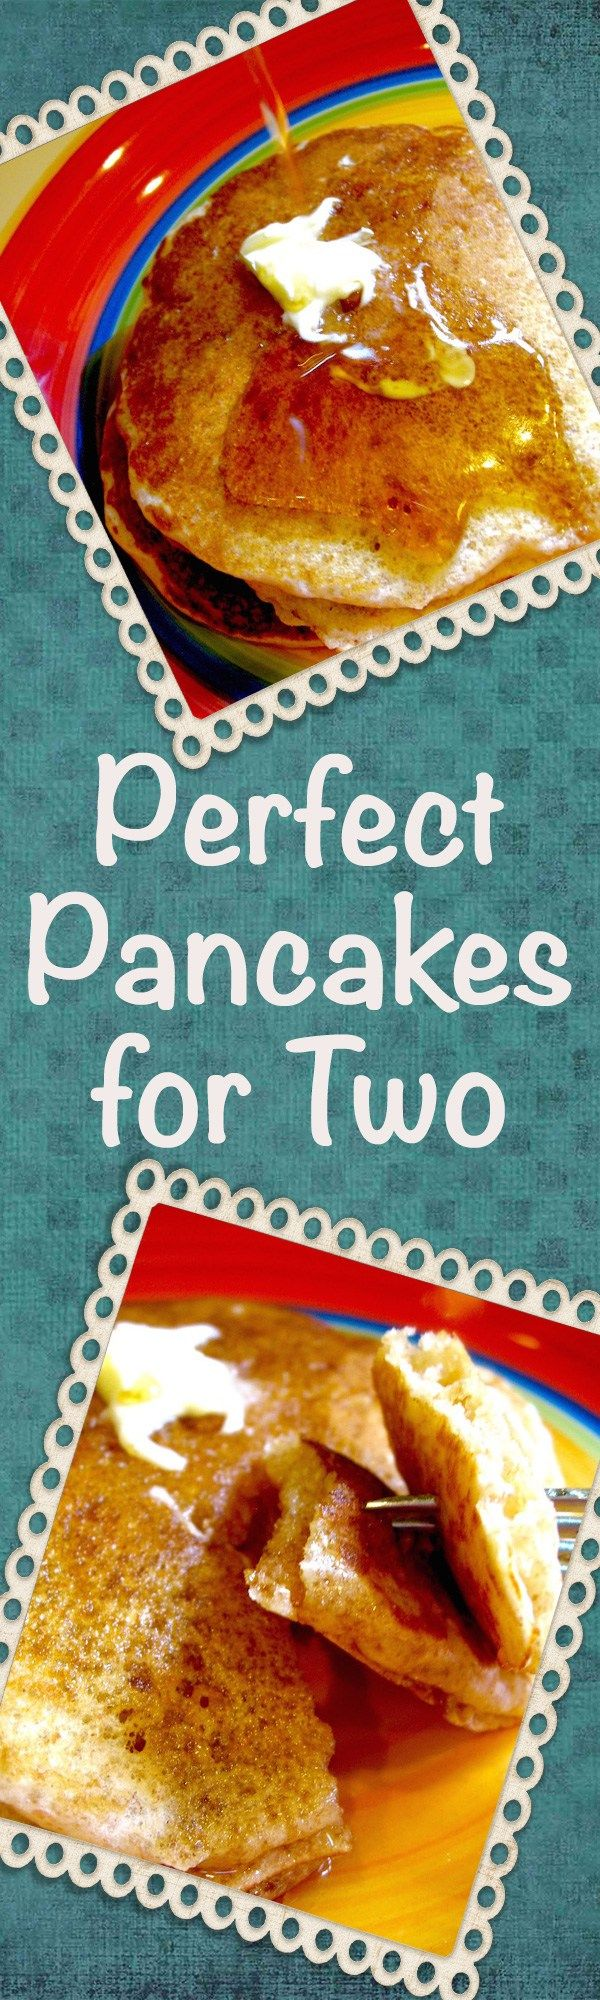 Pancakes for Two are light and fluffy, not cake-y or dry. This recipe for tender pancakes is easy to make and fabulous with any of your favorite toppings. | delishable.net